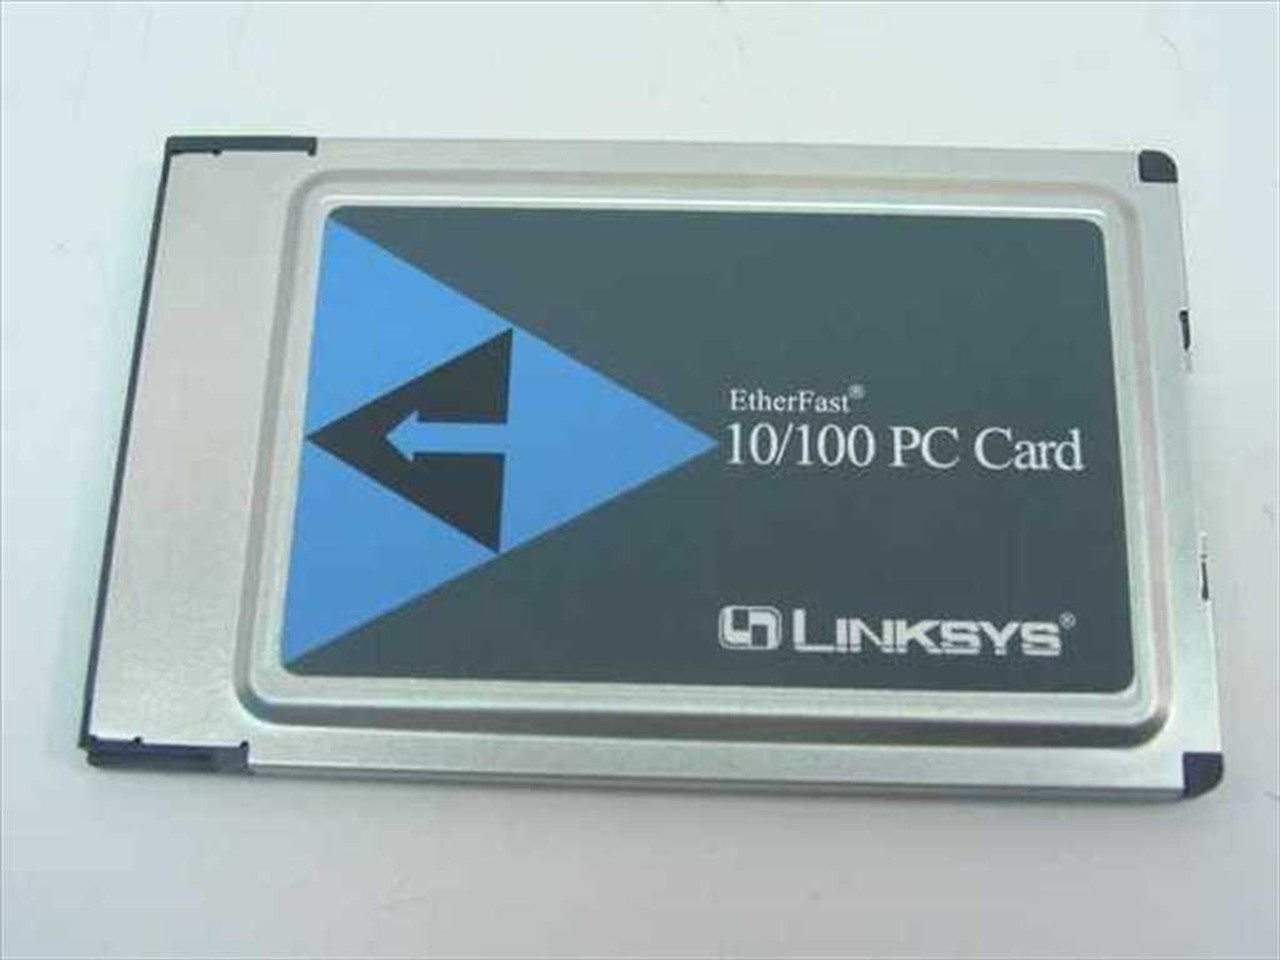 LINKSYS ETHERFAST PCMCIA WINDOWS XP DRIVER DOWNLOAD